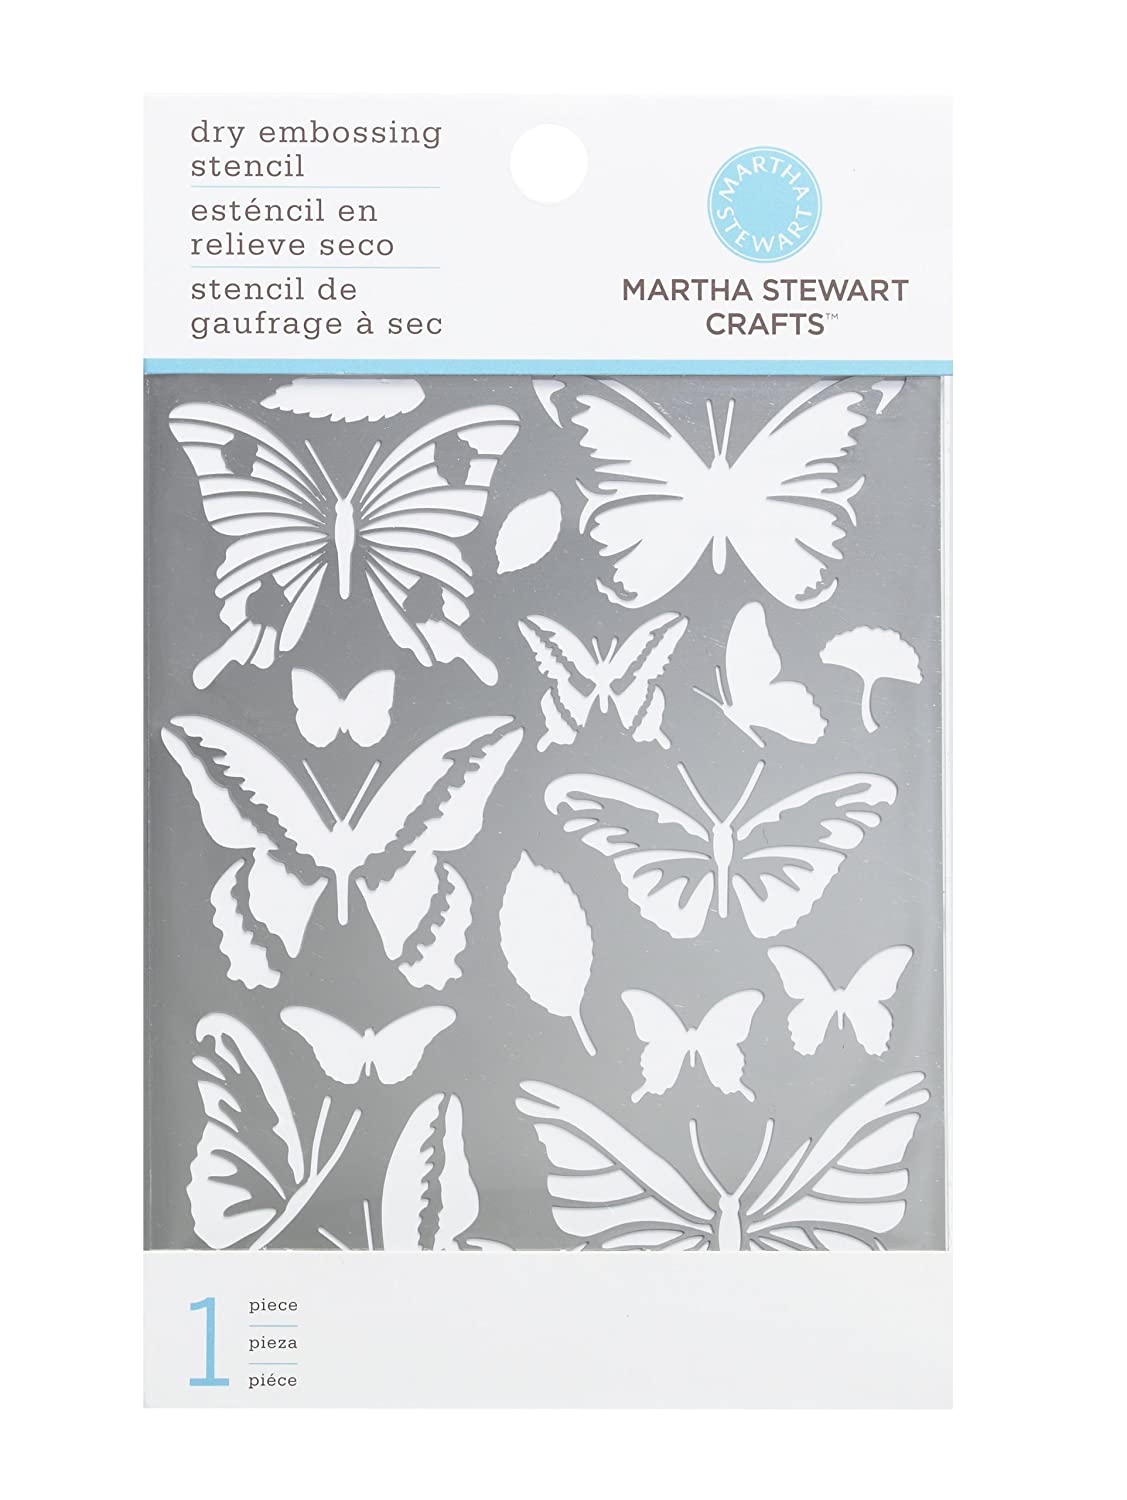 Amazon.com: Martha Stewart Crafts Butterfly Embossing Stencils